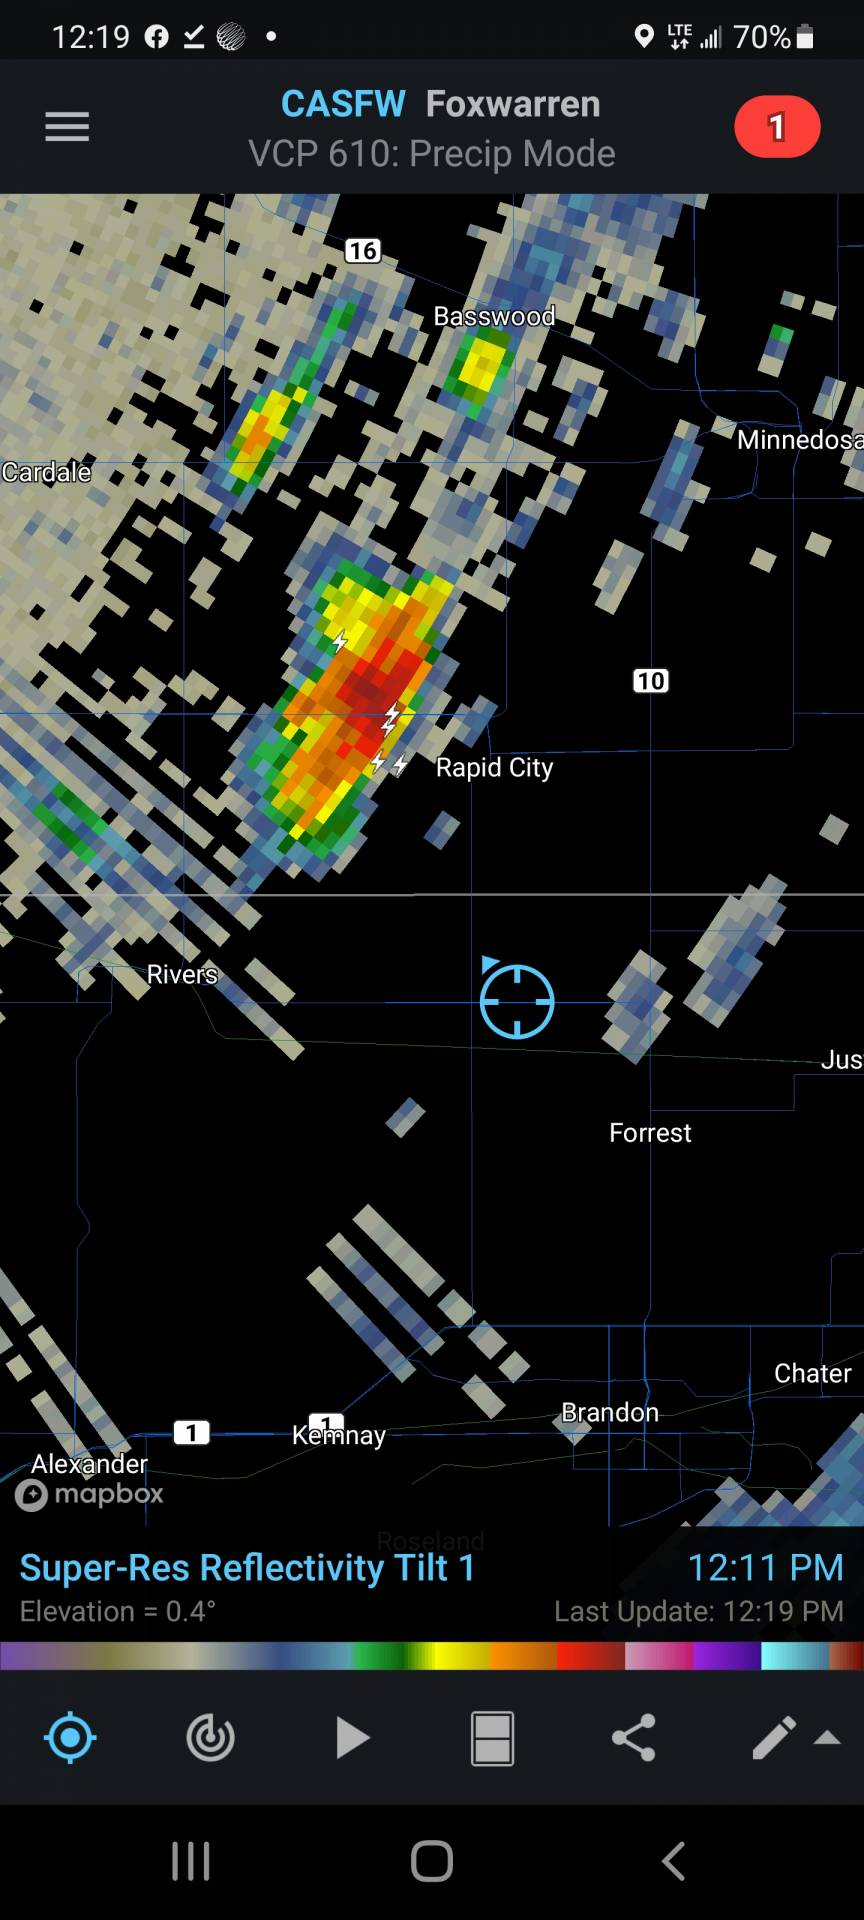 We've got a thunderstorm NW of rapid city building quick